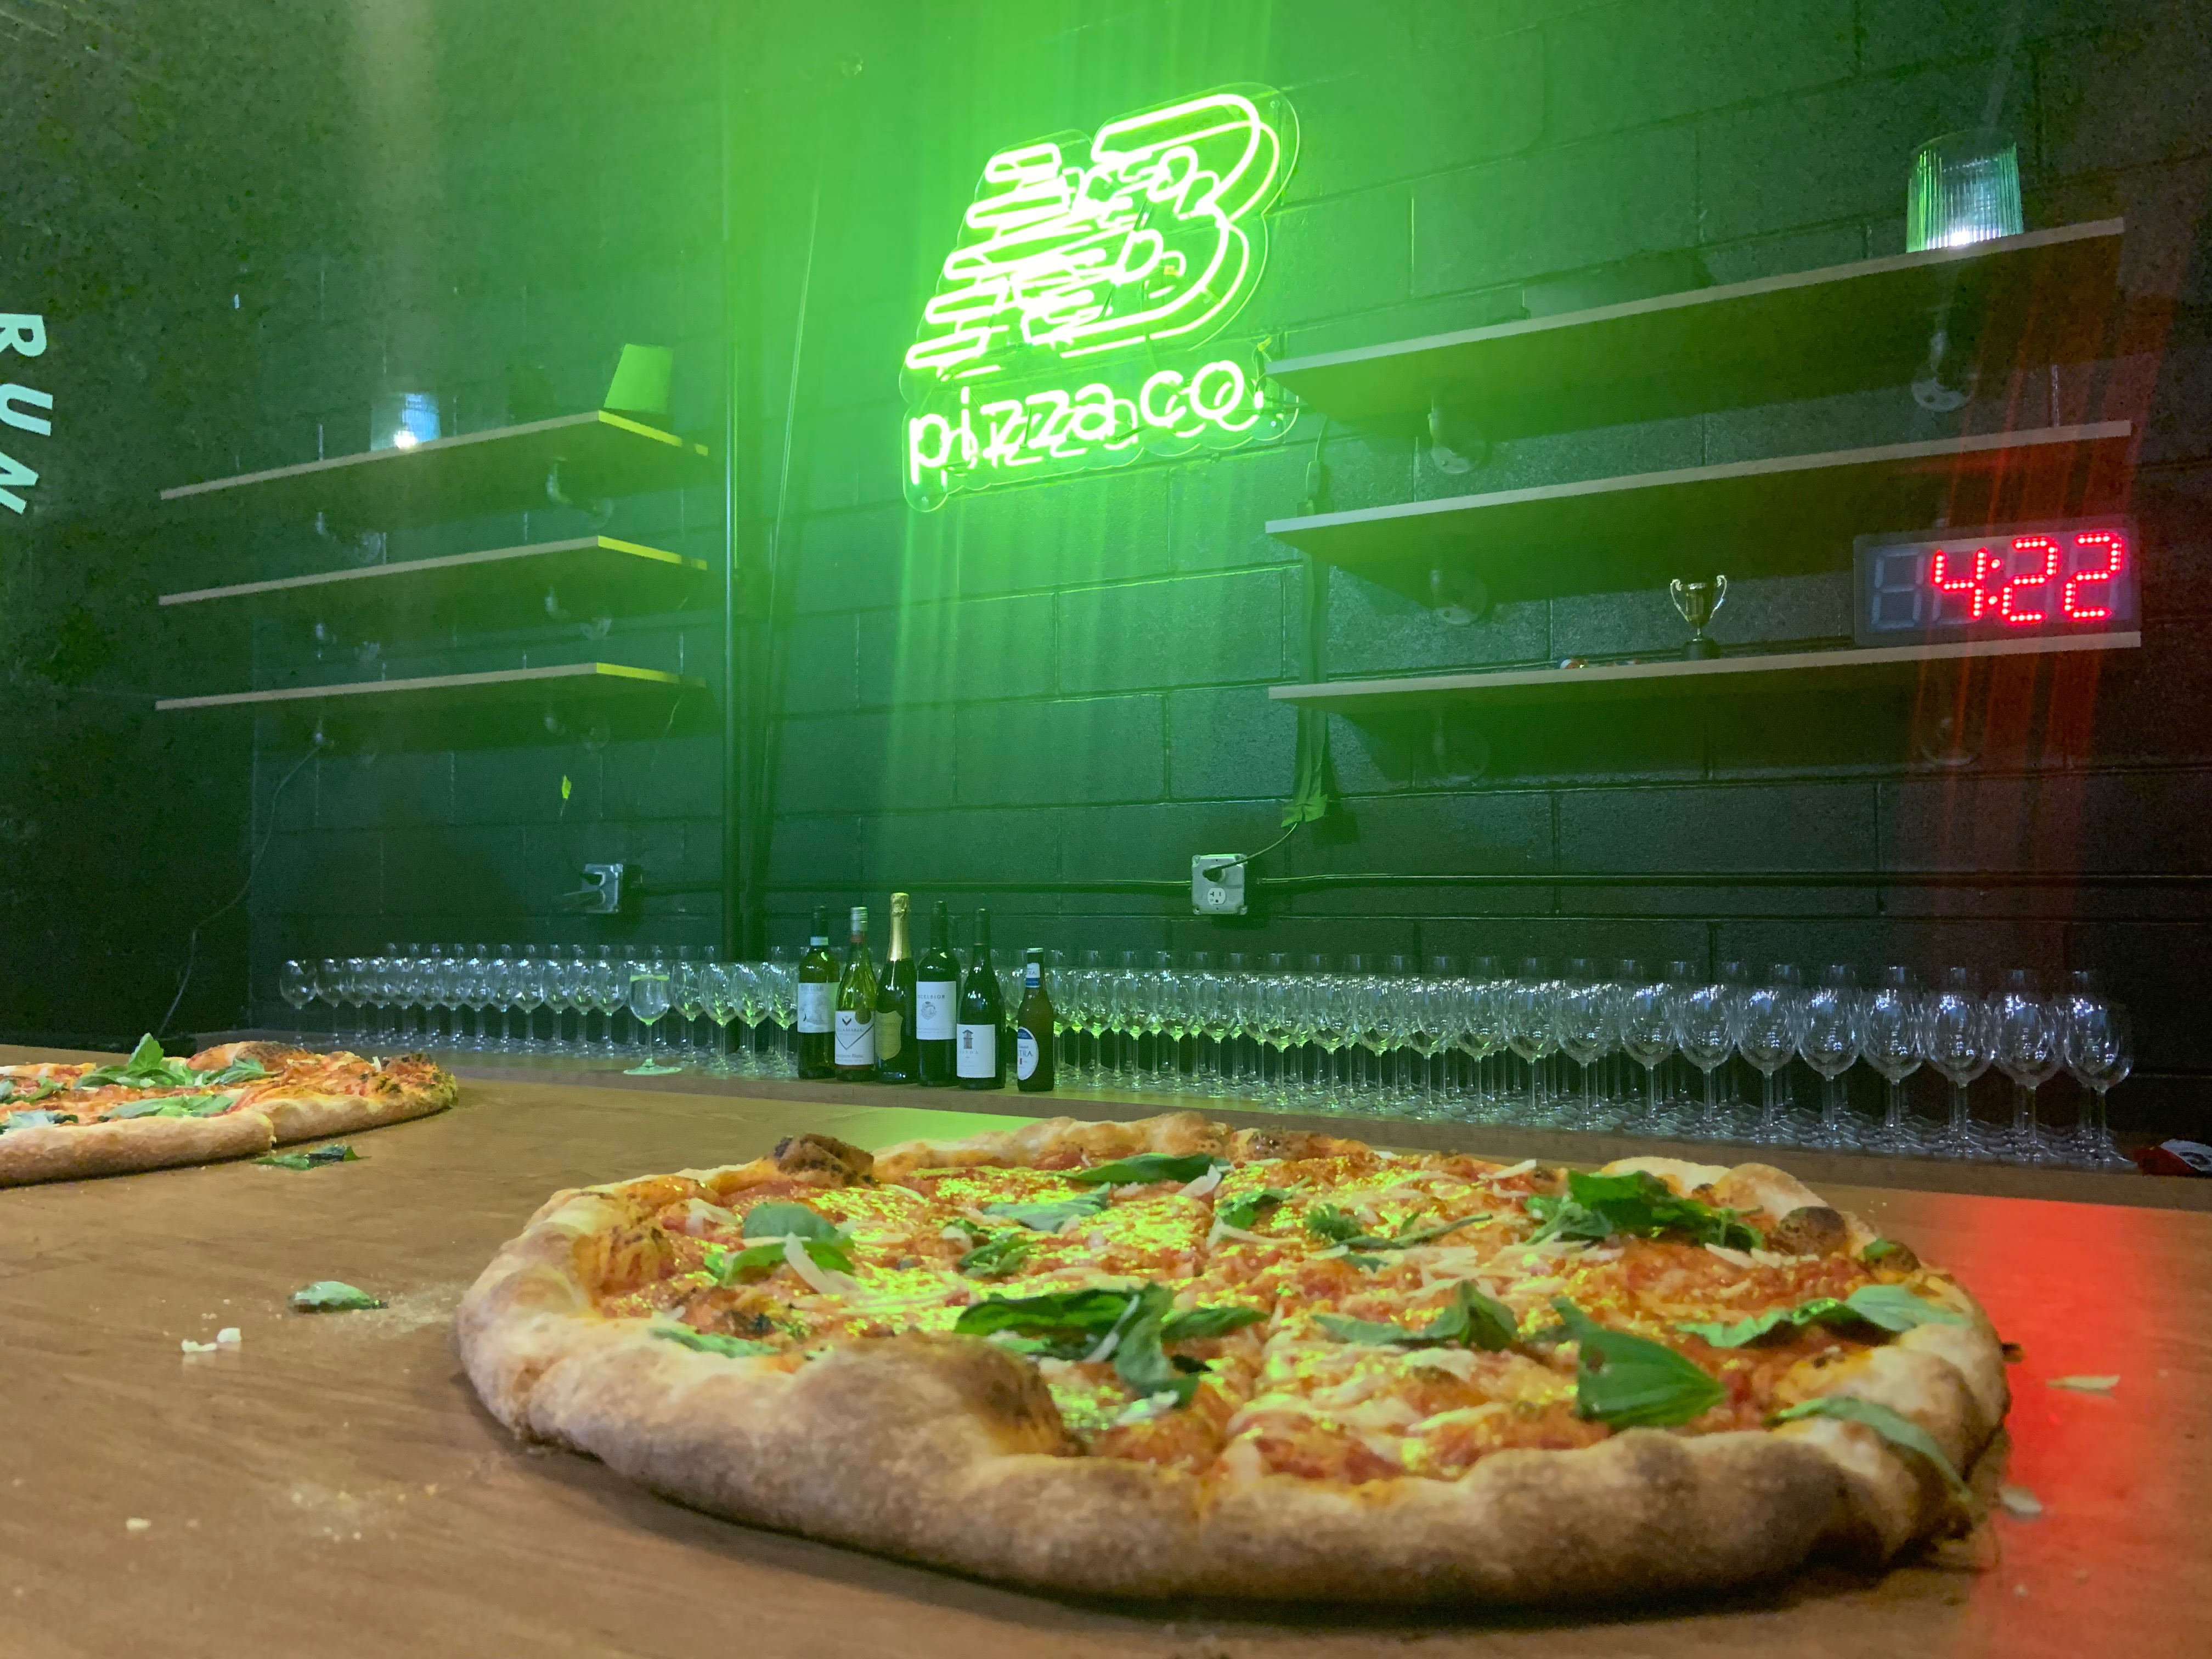 A pie of pizza on a bar in front of a neon green New Balance logo sign